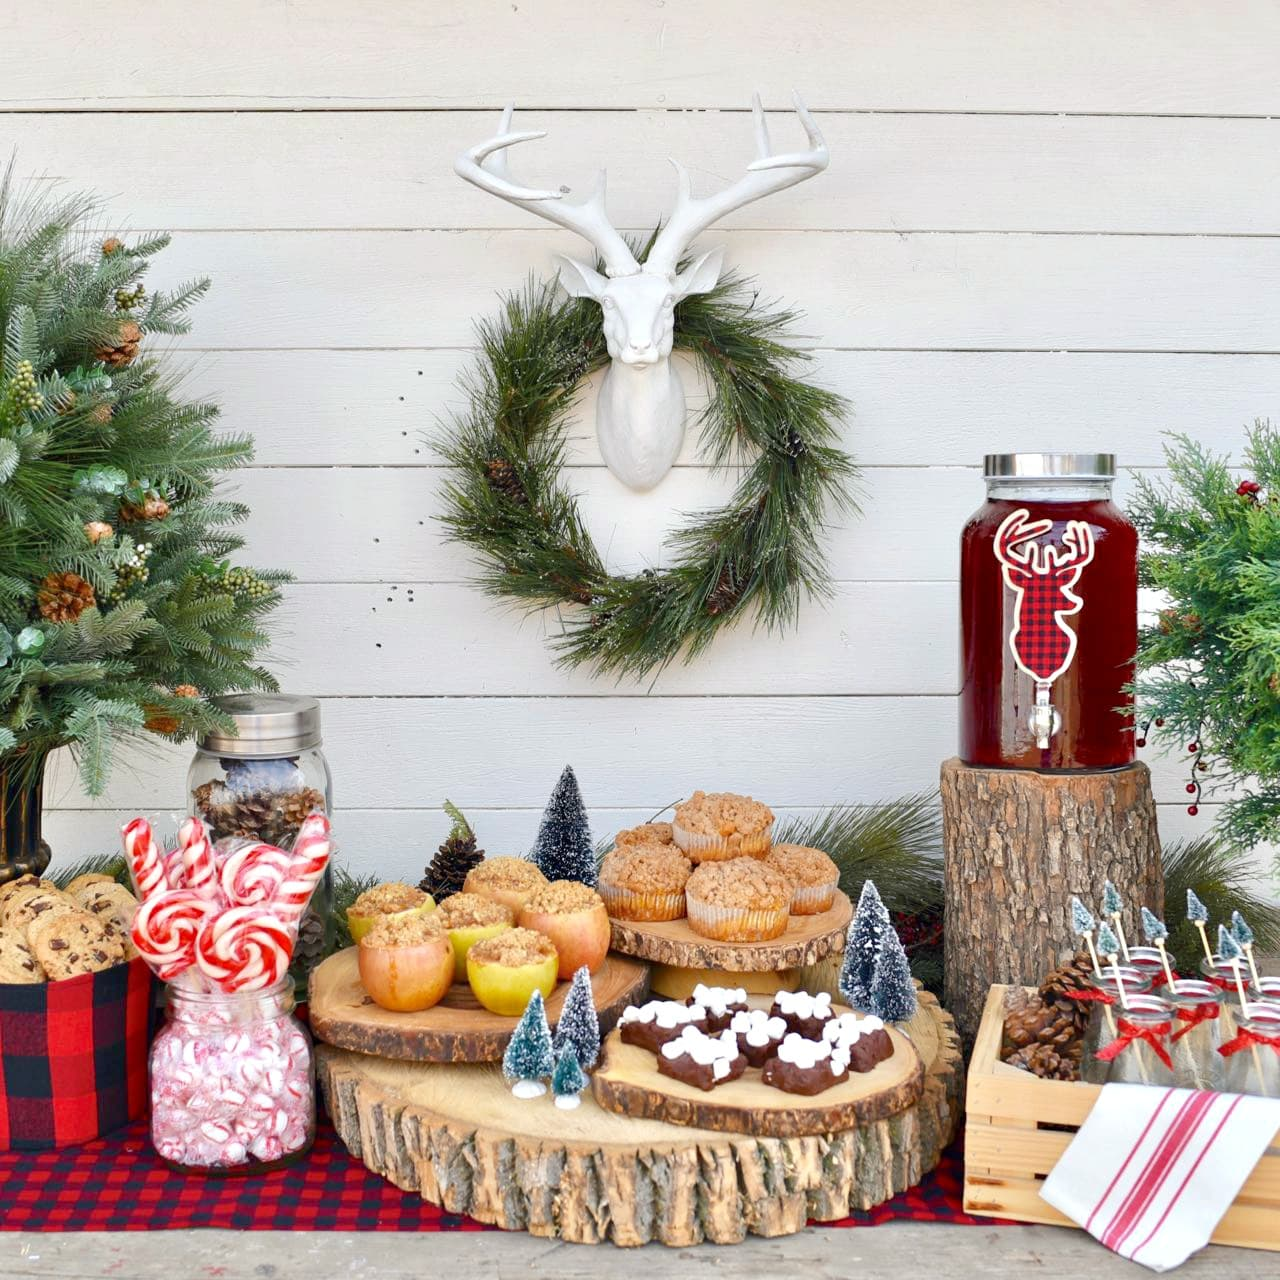 Rustic Holiday Party + Apple Pie in Apples - Make Life Lovely